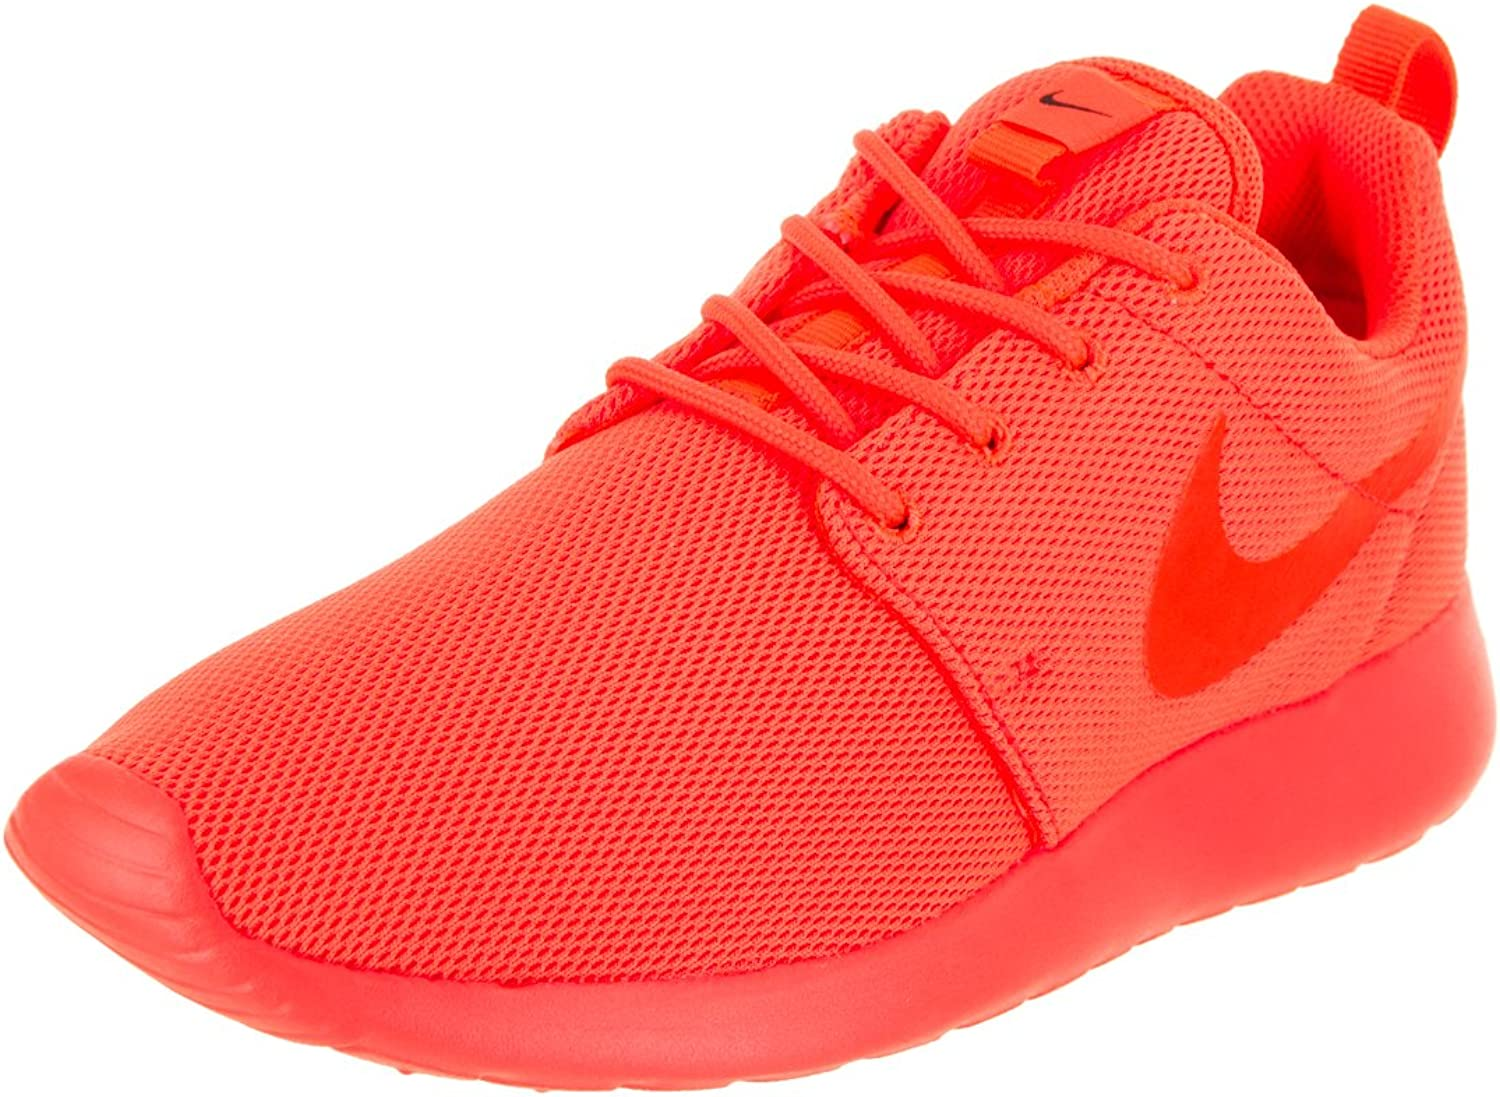 Nike Women's Roshe One Running shoes